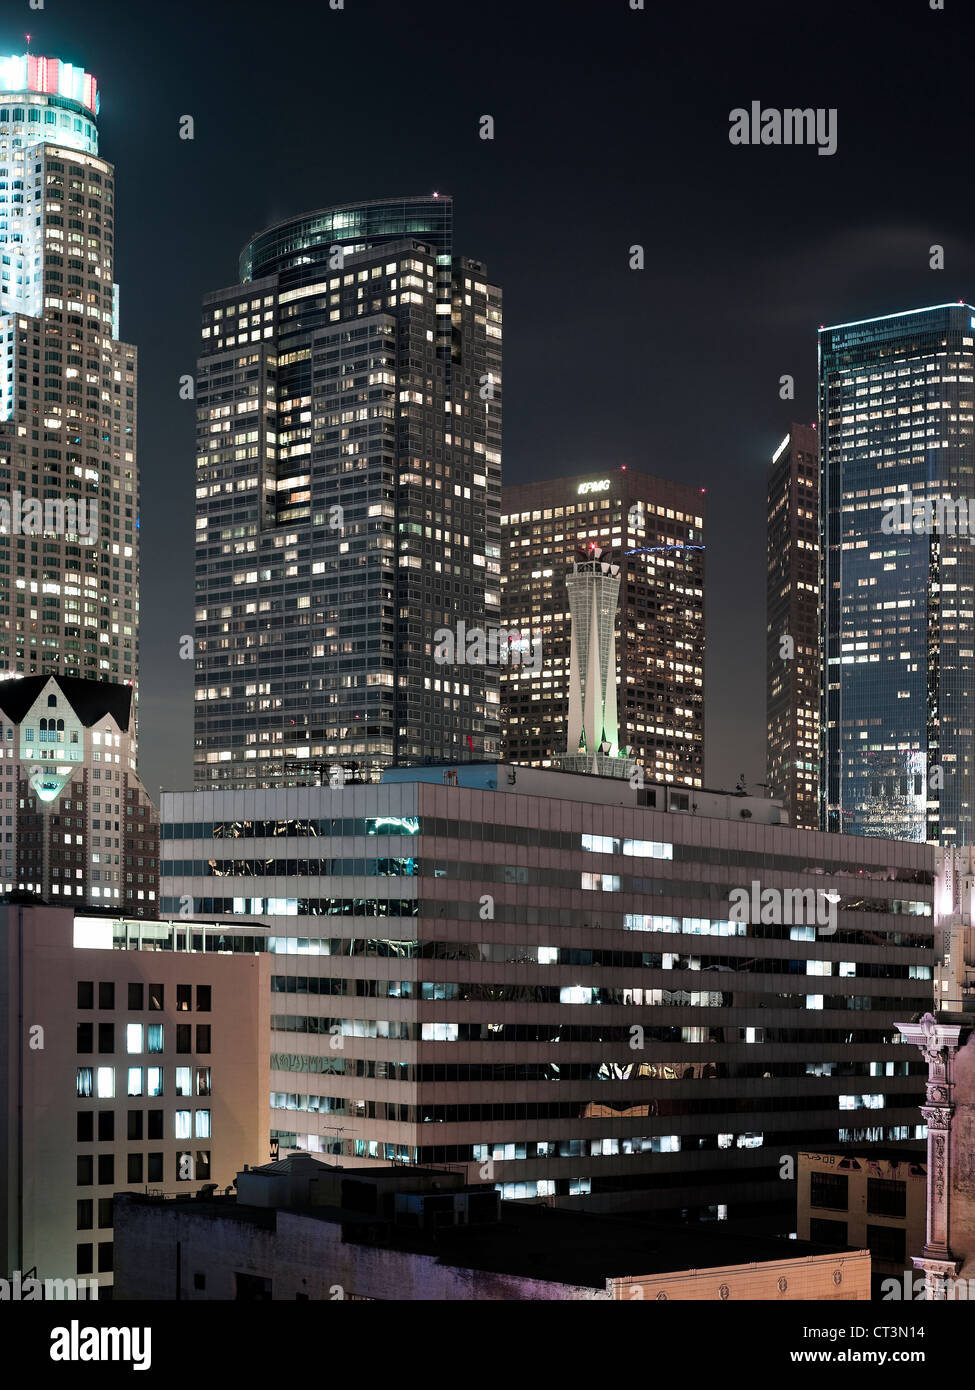 Los Angeles skyscrapers lit up at night - Stock Image